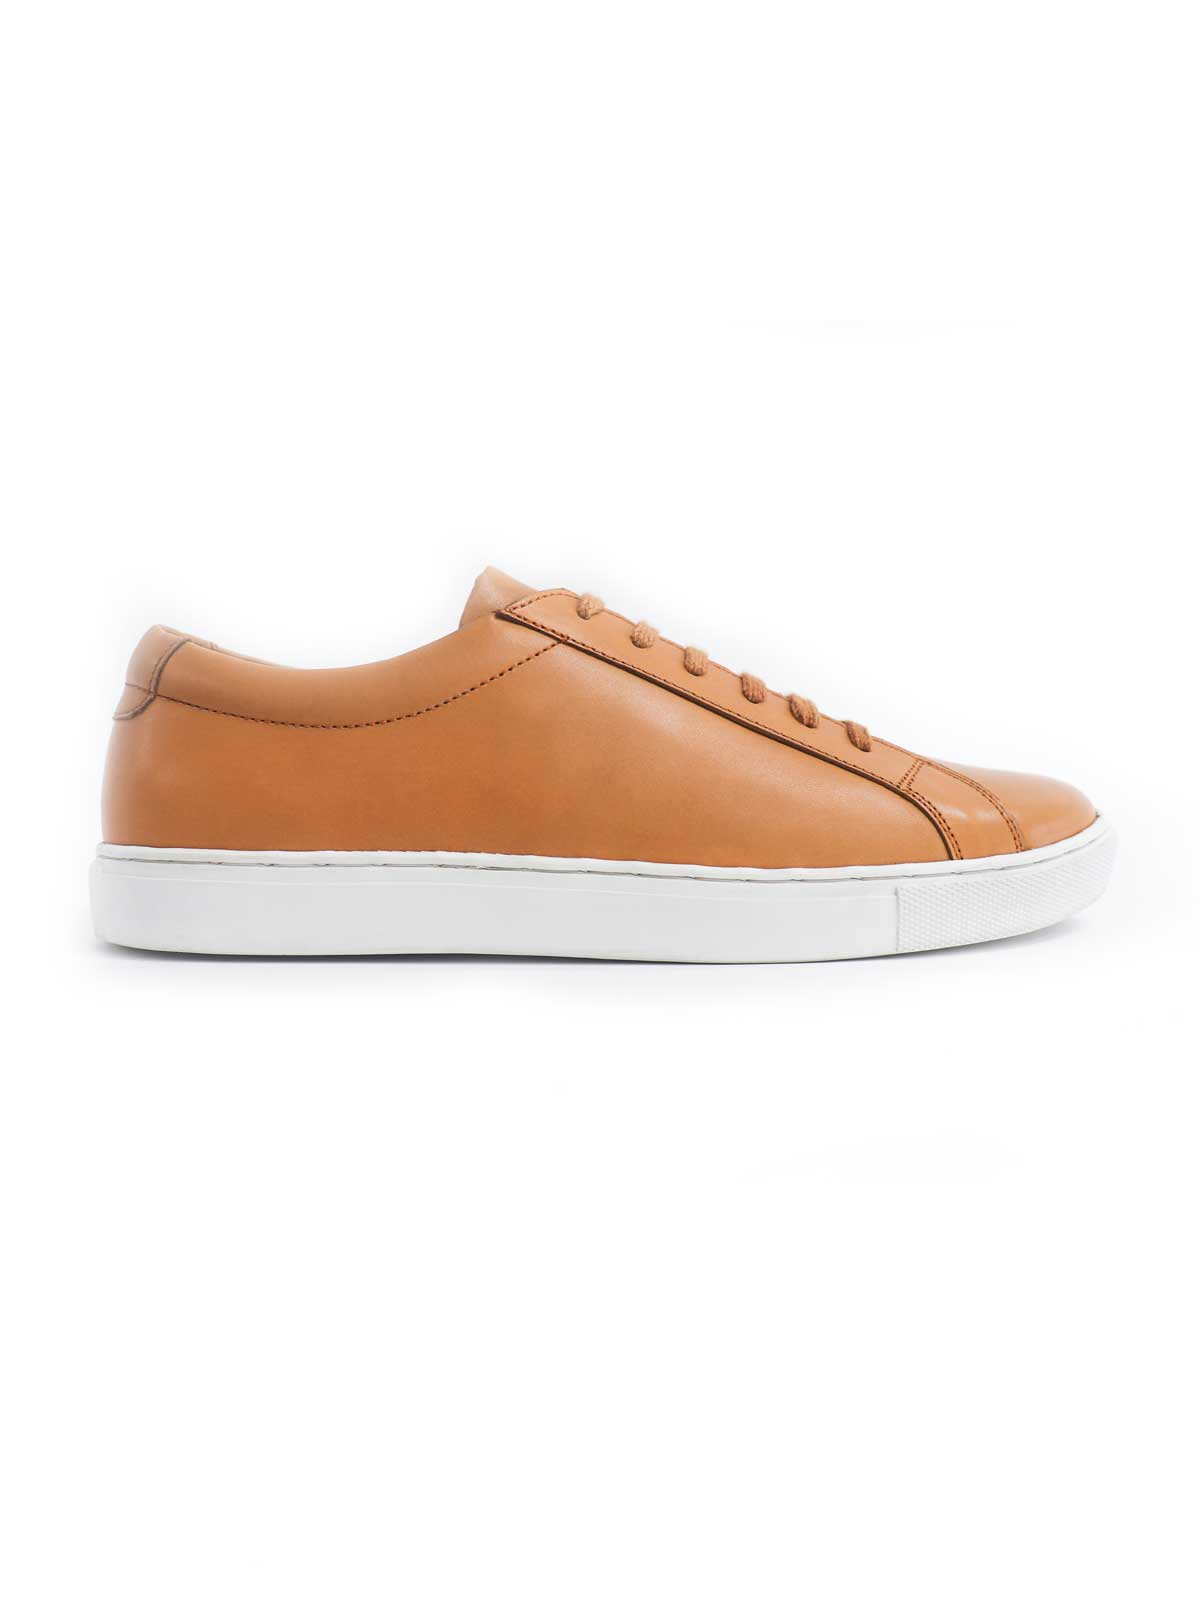 Royal Tan On White Sneaker